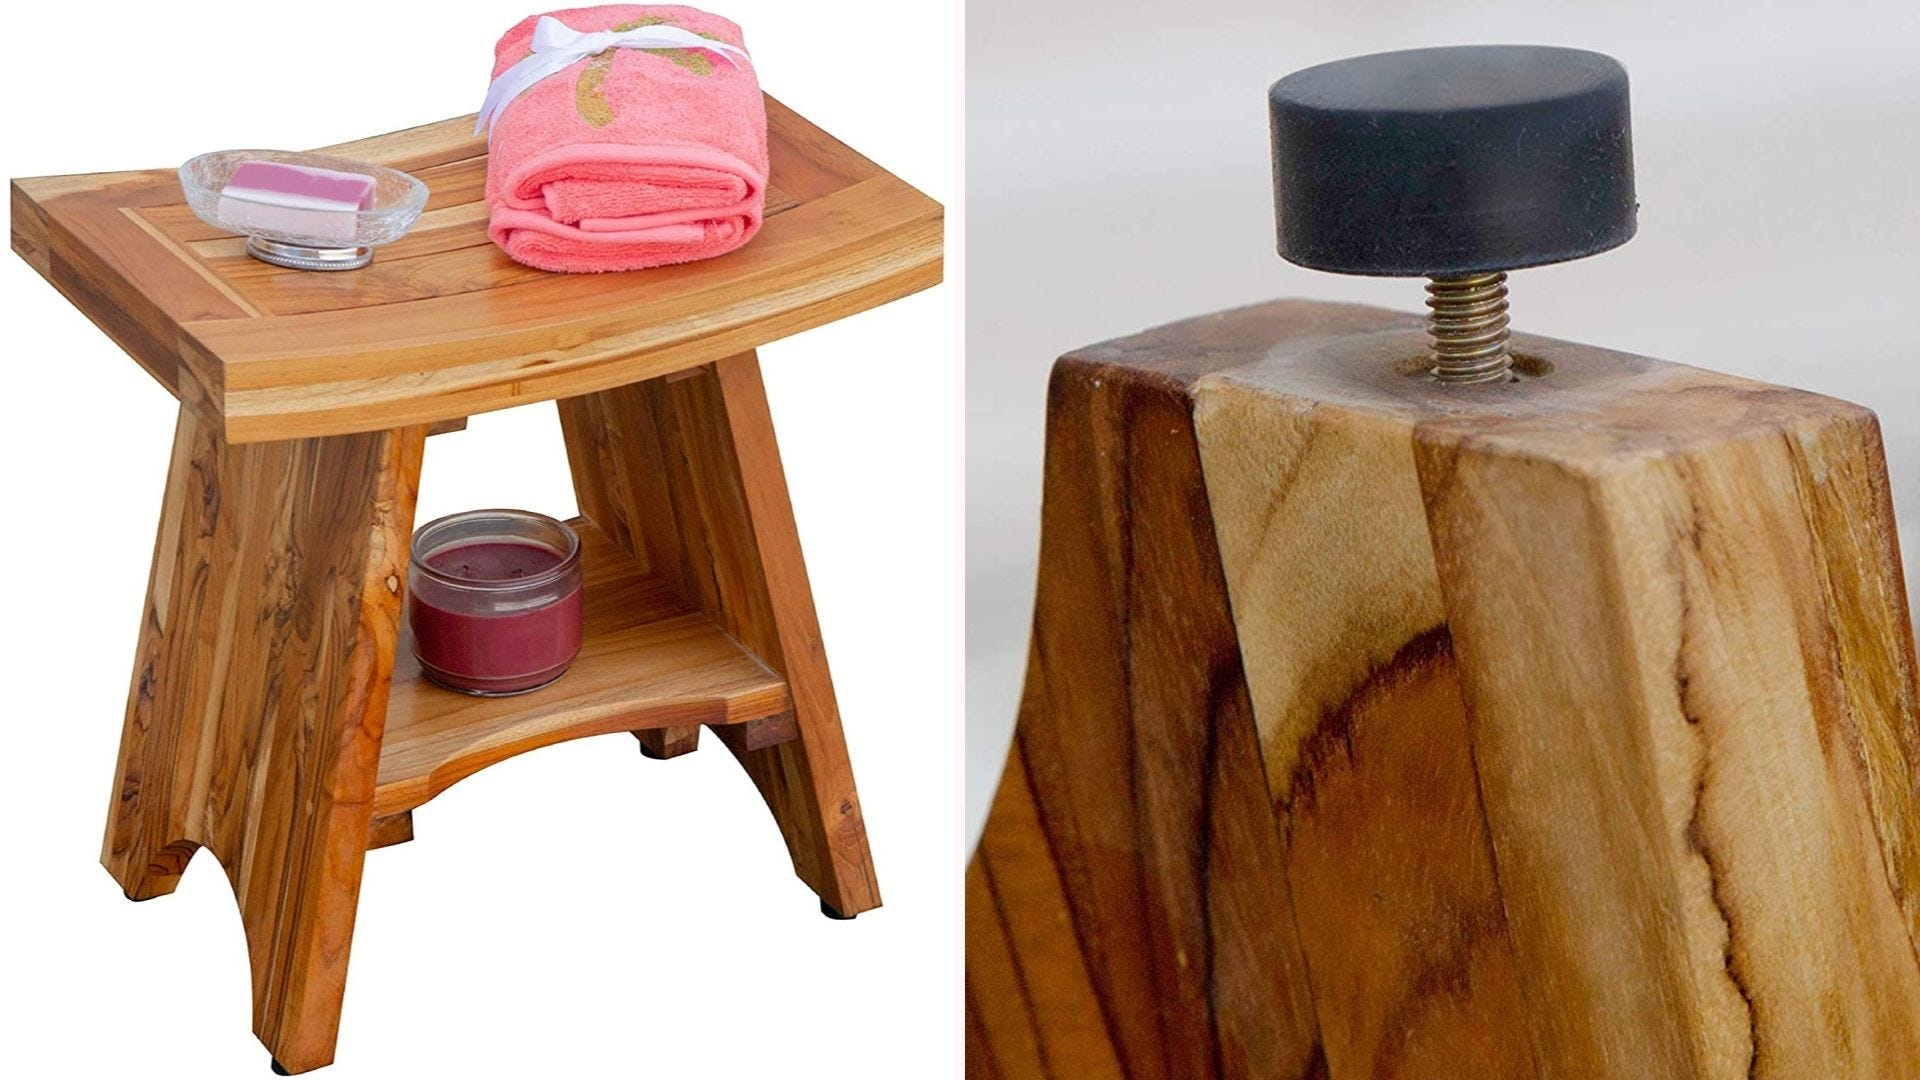 On the left, an 18-by-12-inch shower stool is constructed from light brown teak wood and features a small storage shelf in between the legs of the stool. On the right, a closeup view of the bottom of the shower stool's leg, which showcases its height adjustable rubber foot pads.